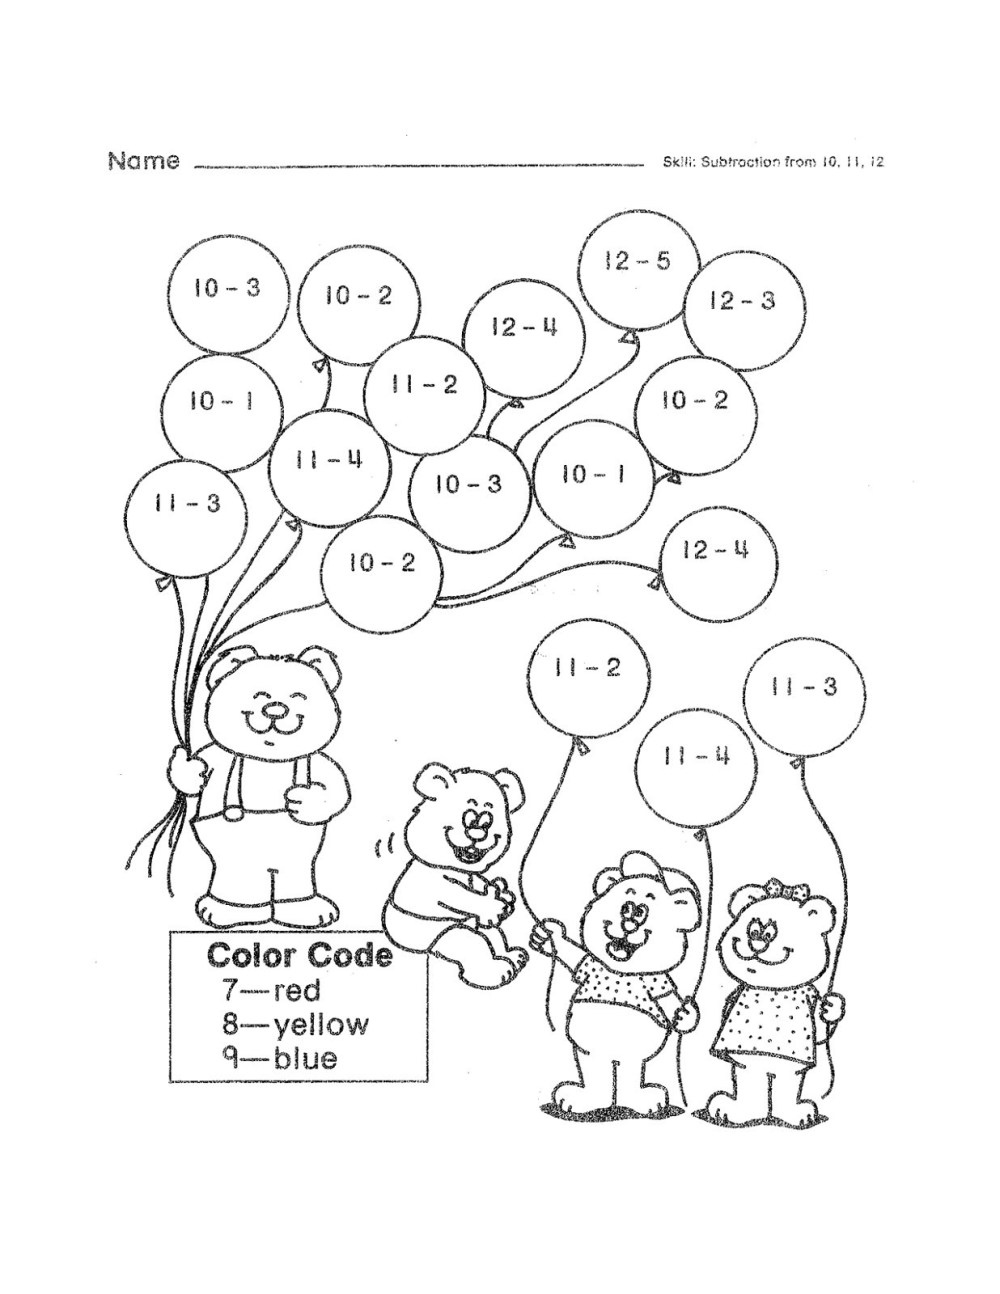 medium resolution of 3 Vocabulary Worksheets First Grade 1 - AMP